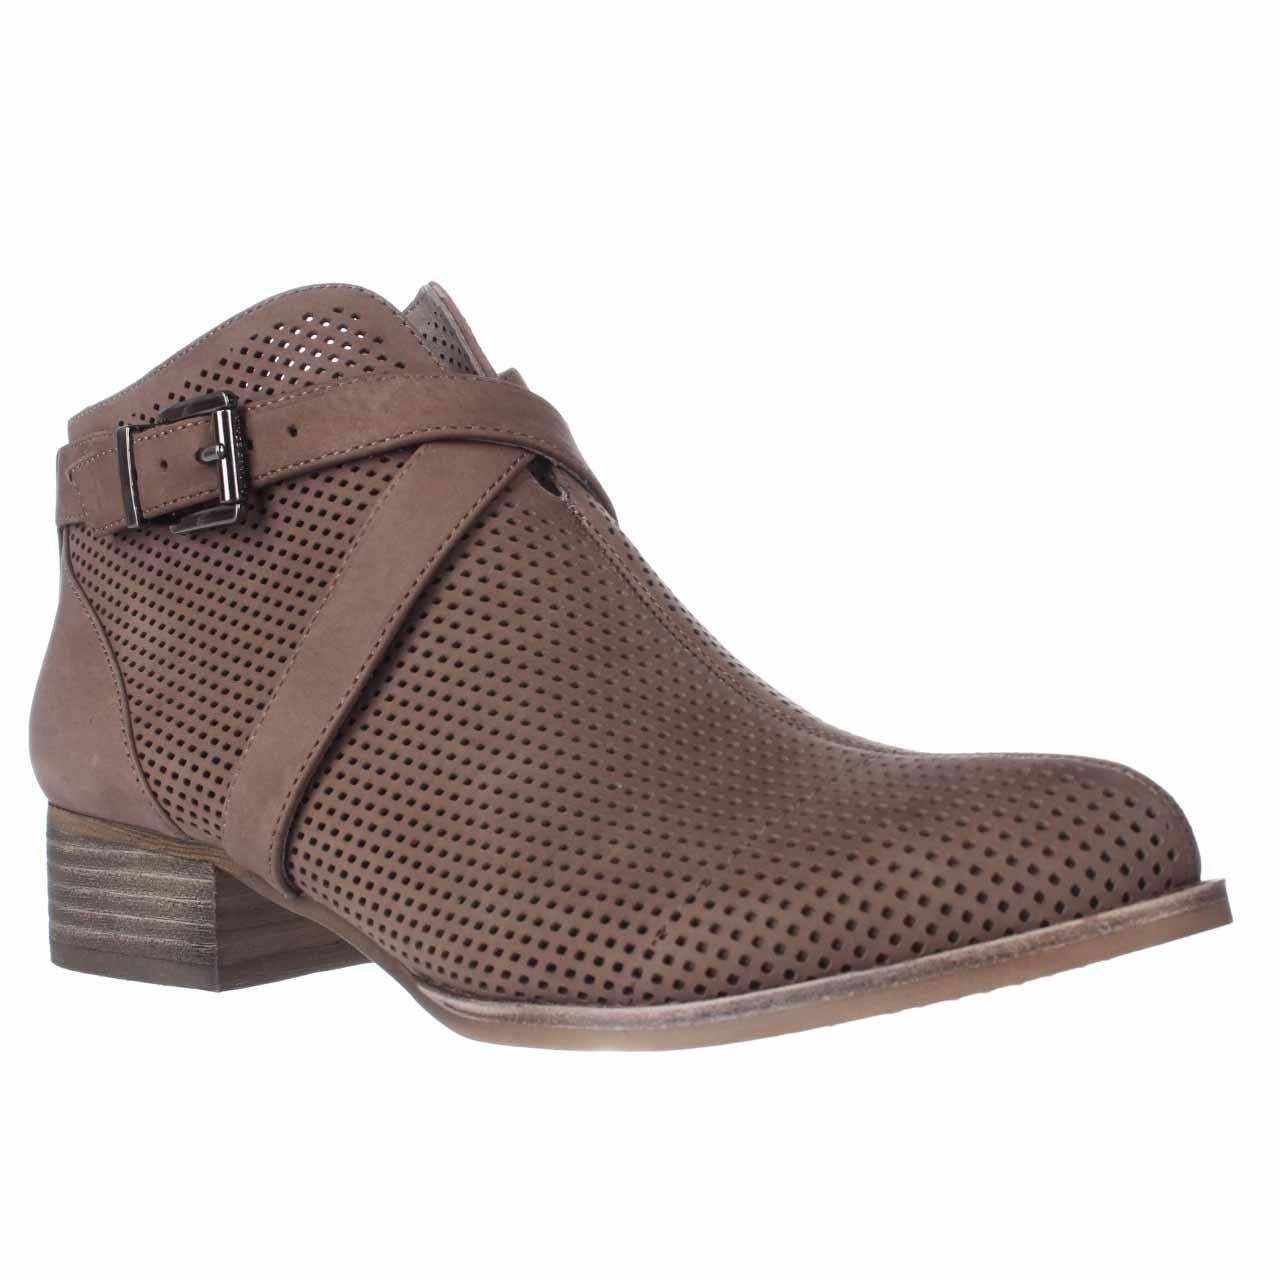 029b80544cff Shop Vince Camuto Casha Perforated Ankle Booties